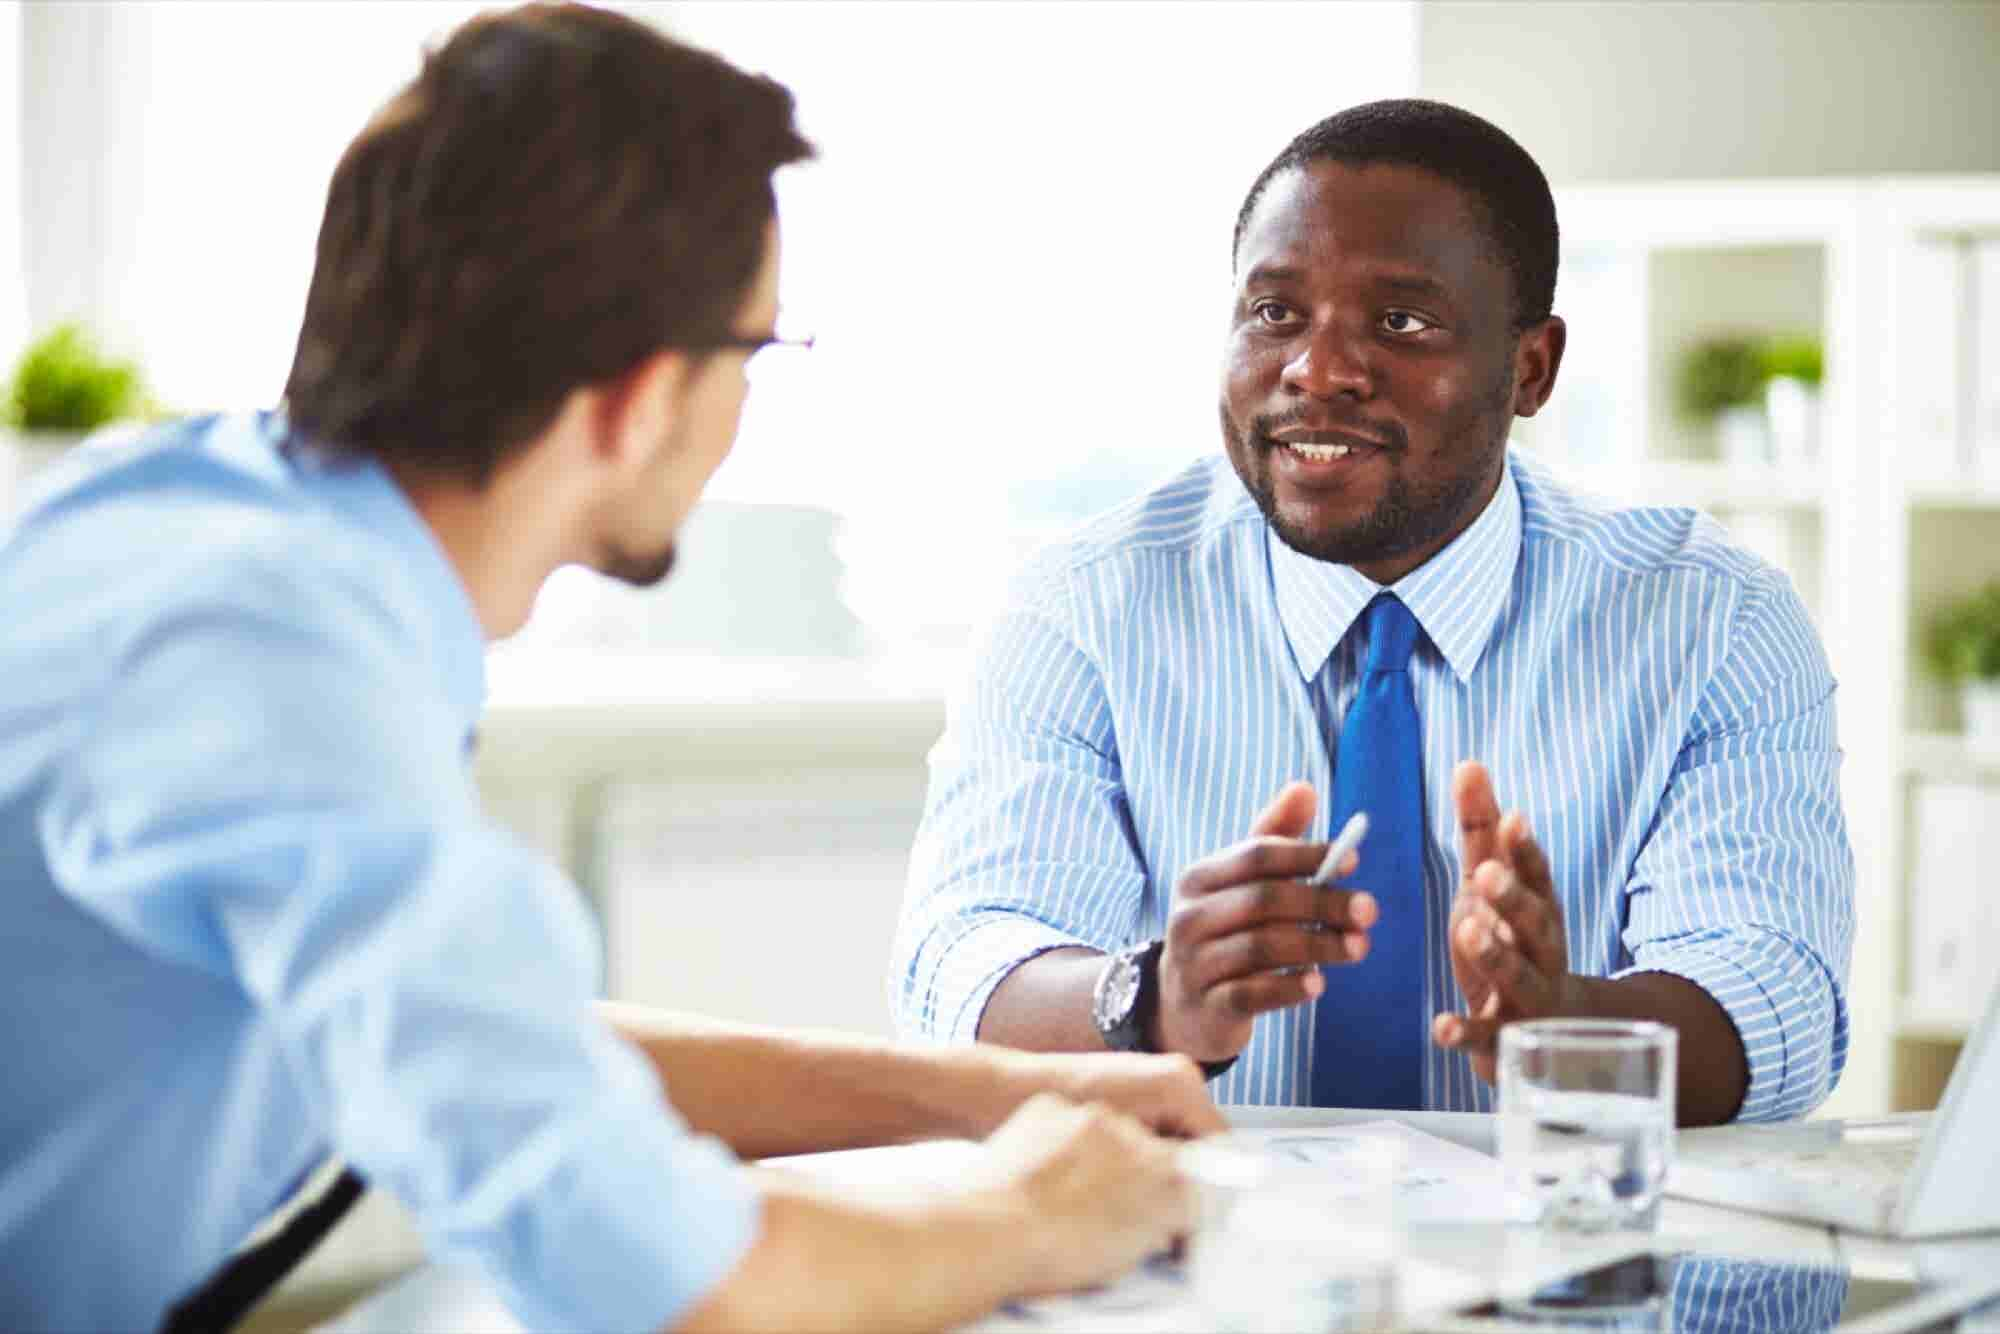 8 Sneaky Sales Techniques to Try in Your Next Job Interview